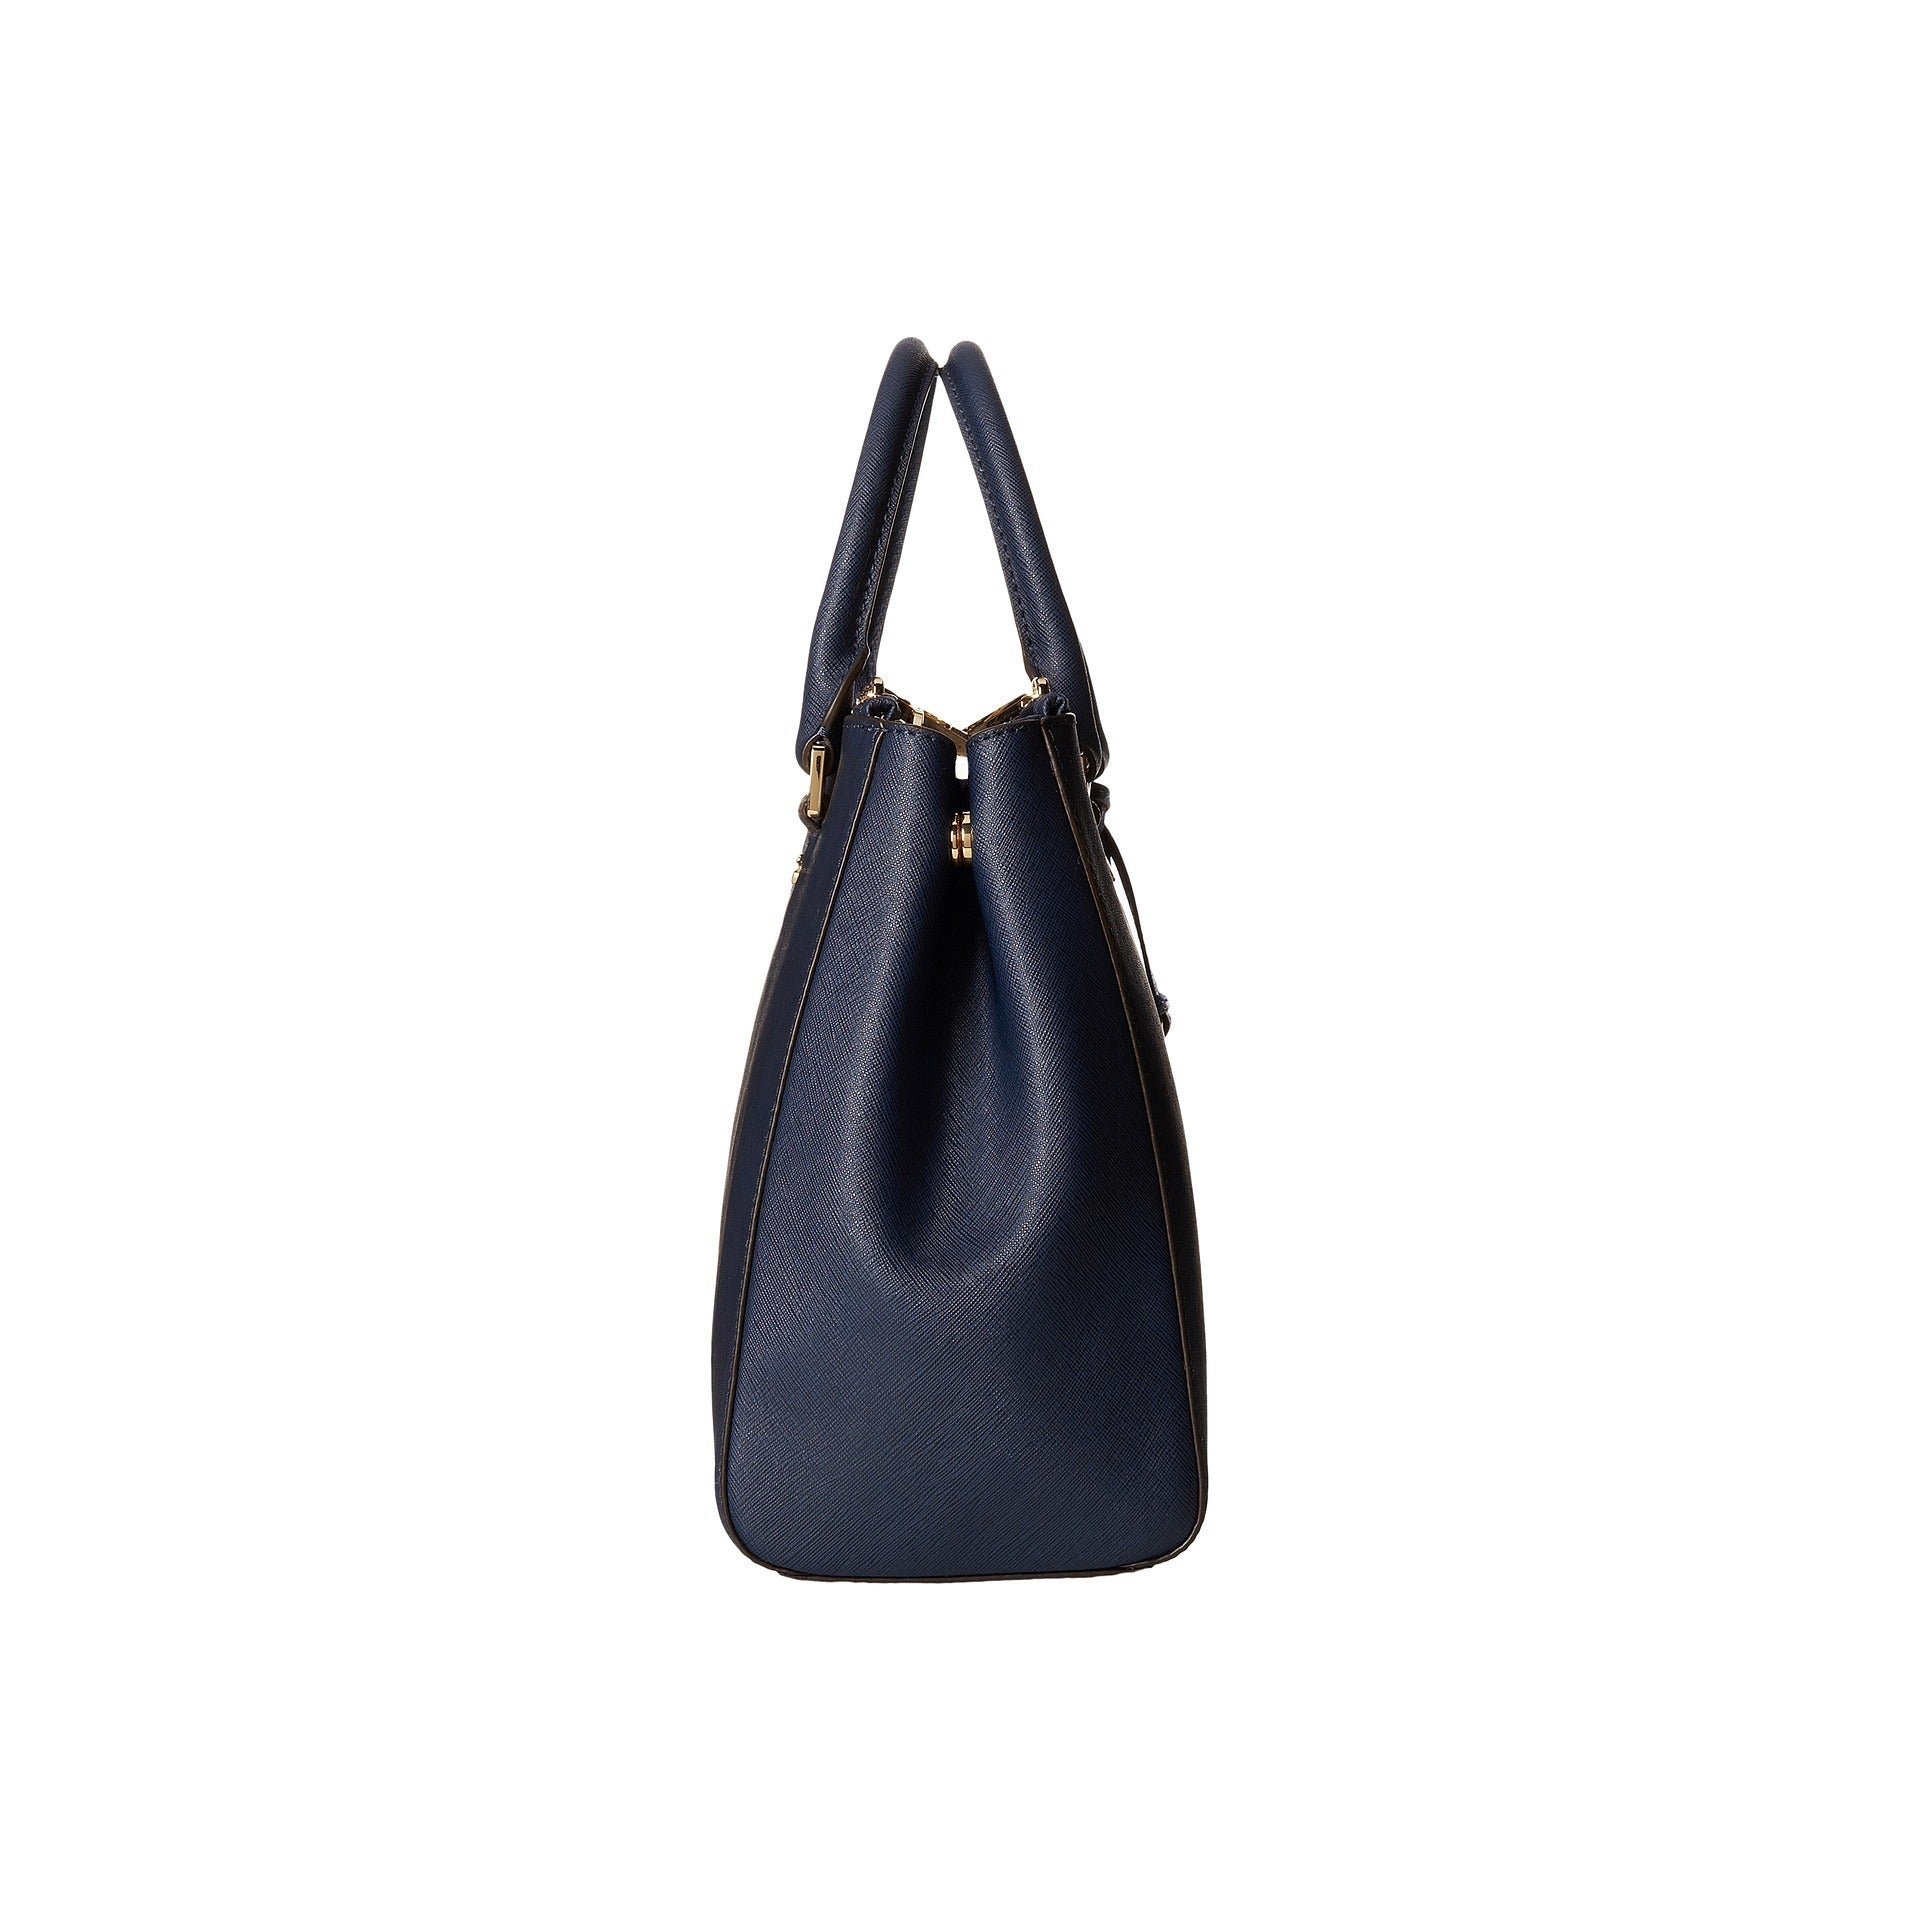 c06cdc7930f Shop Michael Kors Sutton Medium Navy Satchel Handbag - Free Shipping Today  - Overstock.com - 10814053